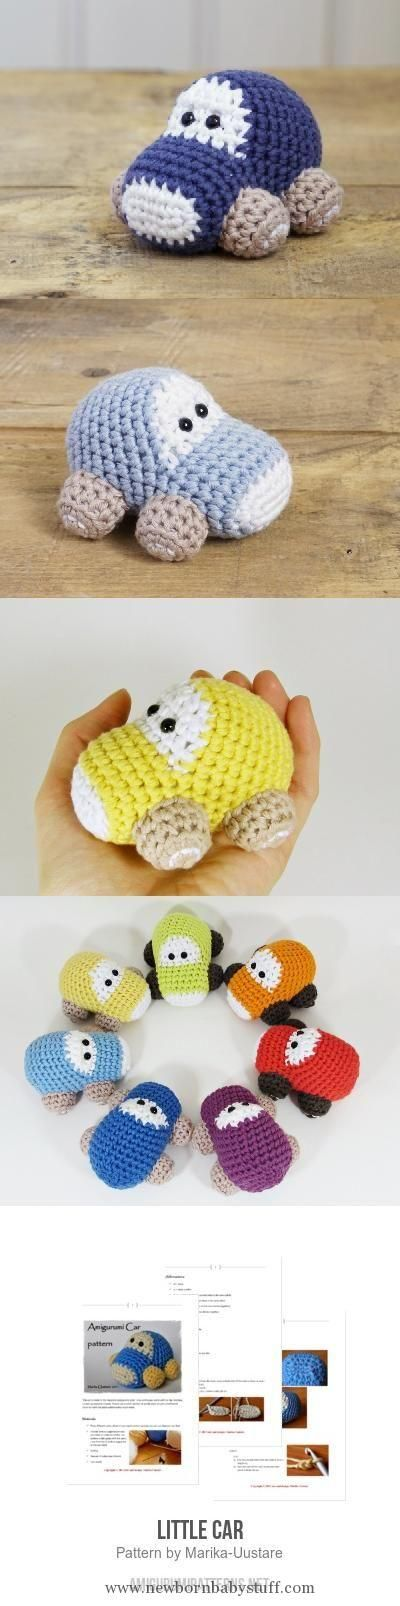 Baby Knitting Patterns Little Car Amigurumi Pattern...